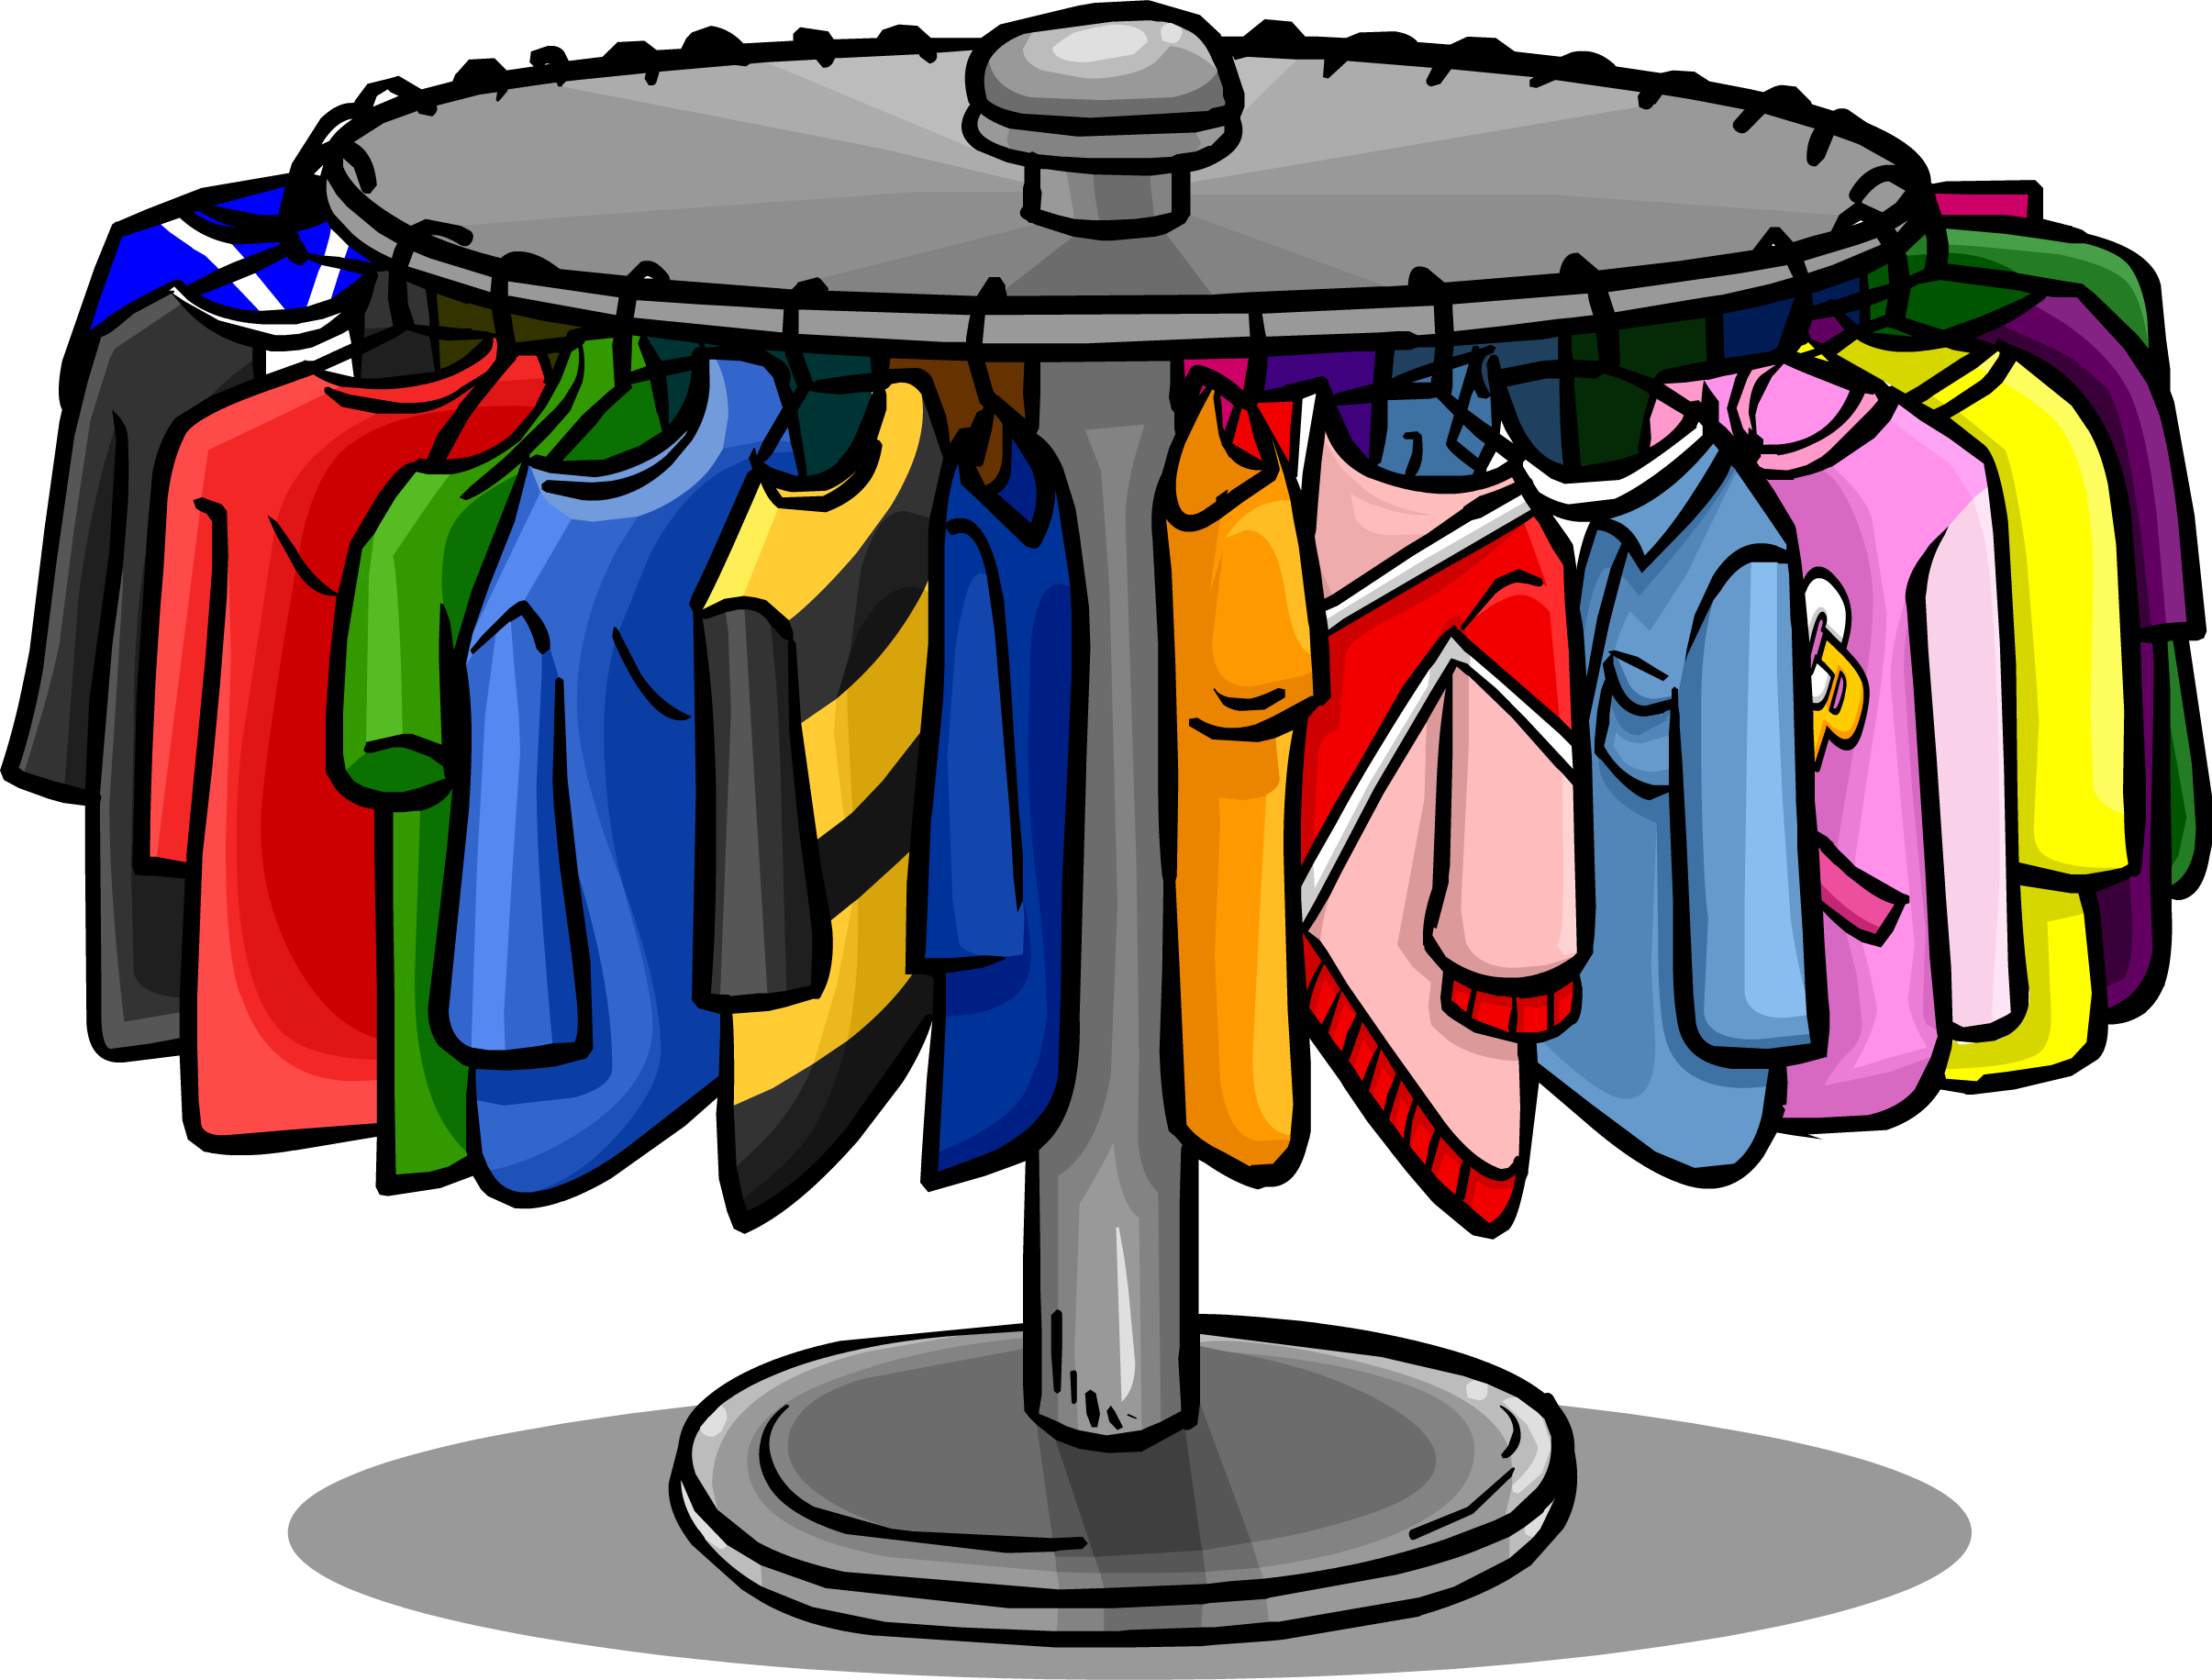 Wardrobe png clipart image free download Clothing PNG Transparent Images   PNG All image free download